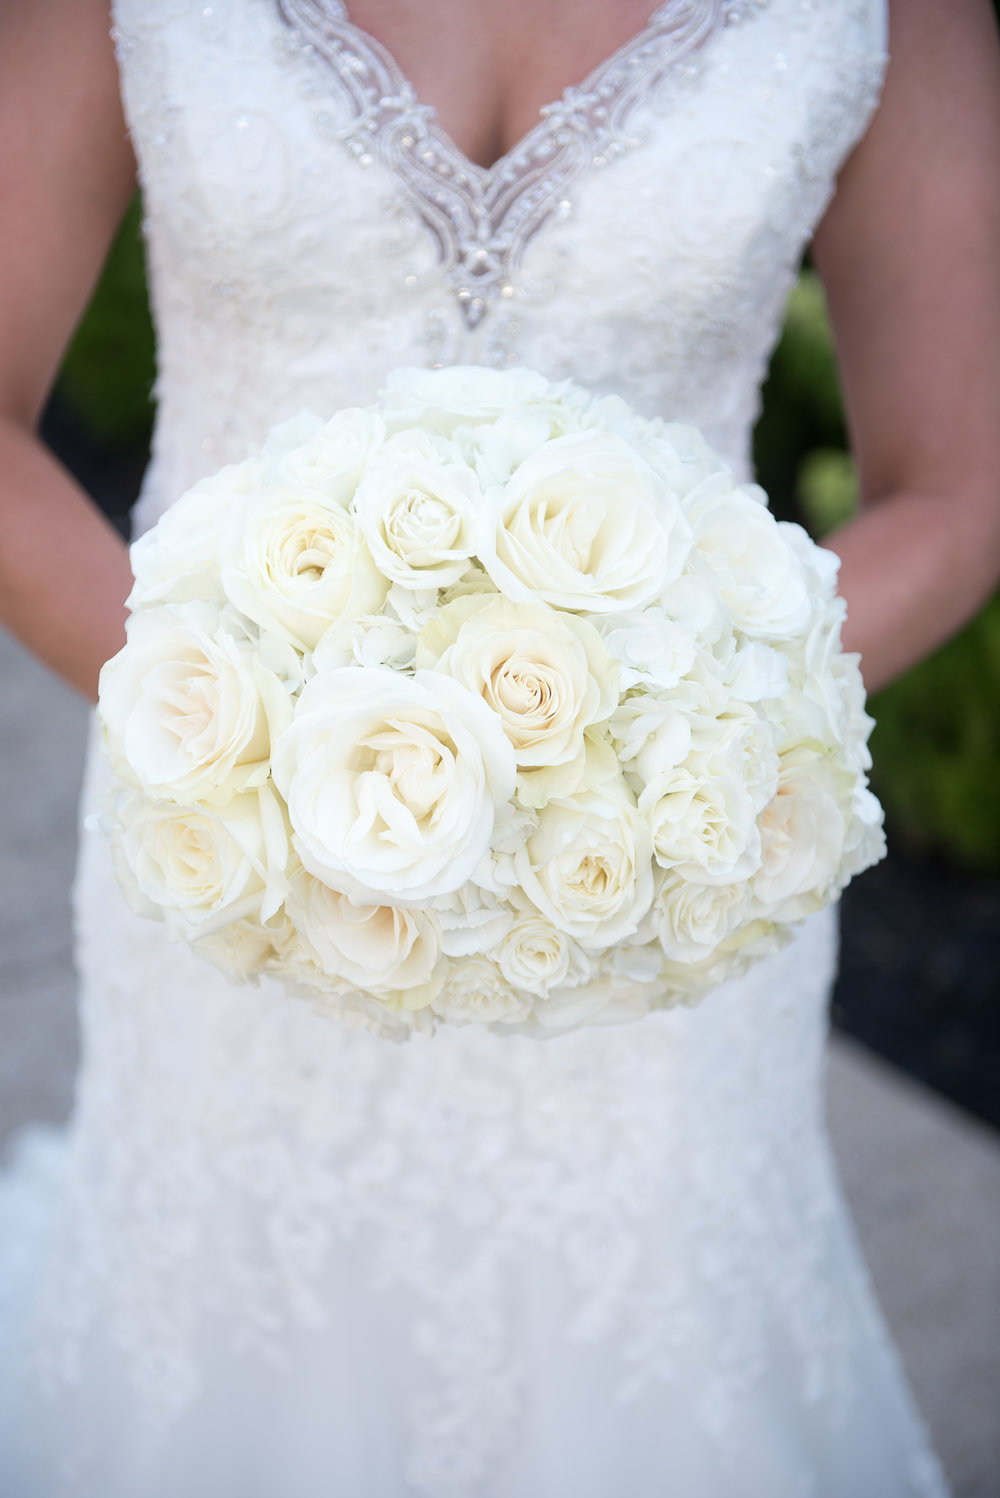 Journal flowers by tami classic white roses and hydrangea nbspphoto by david payne nbspstratton izmirmasajfo